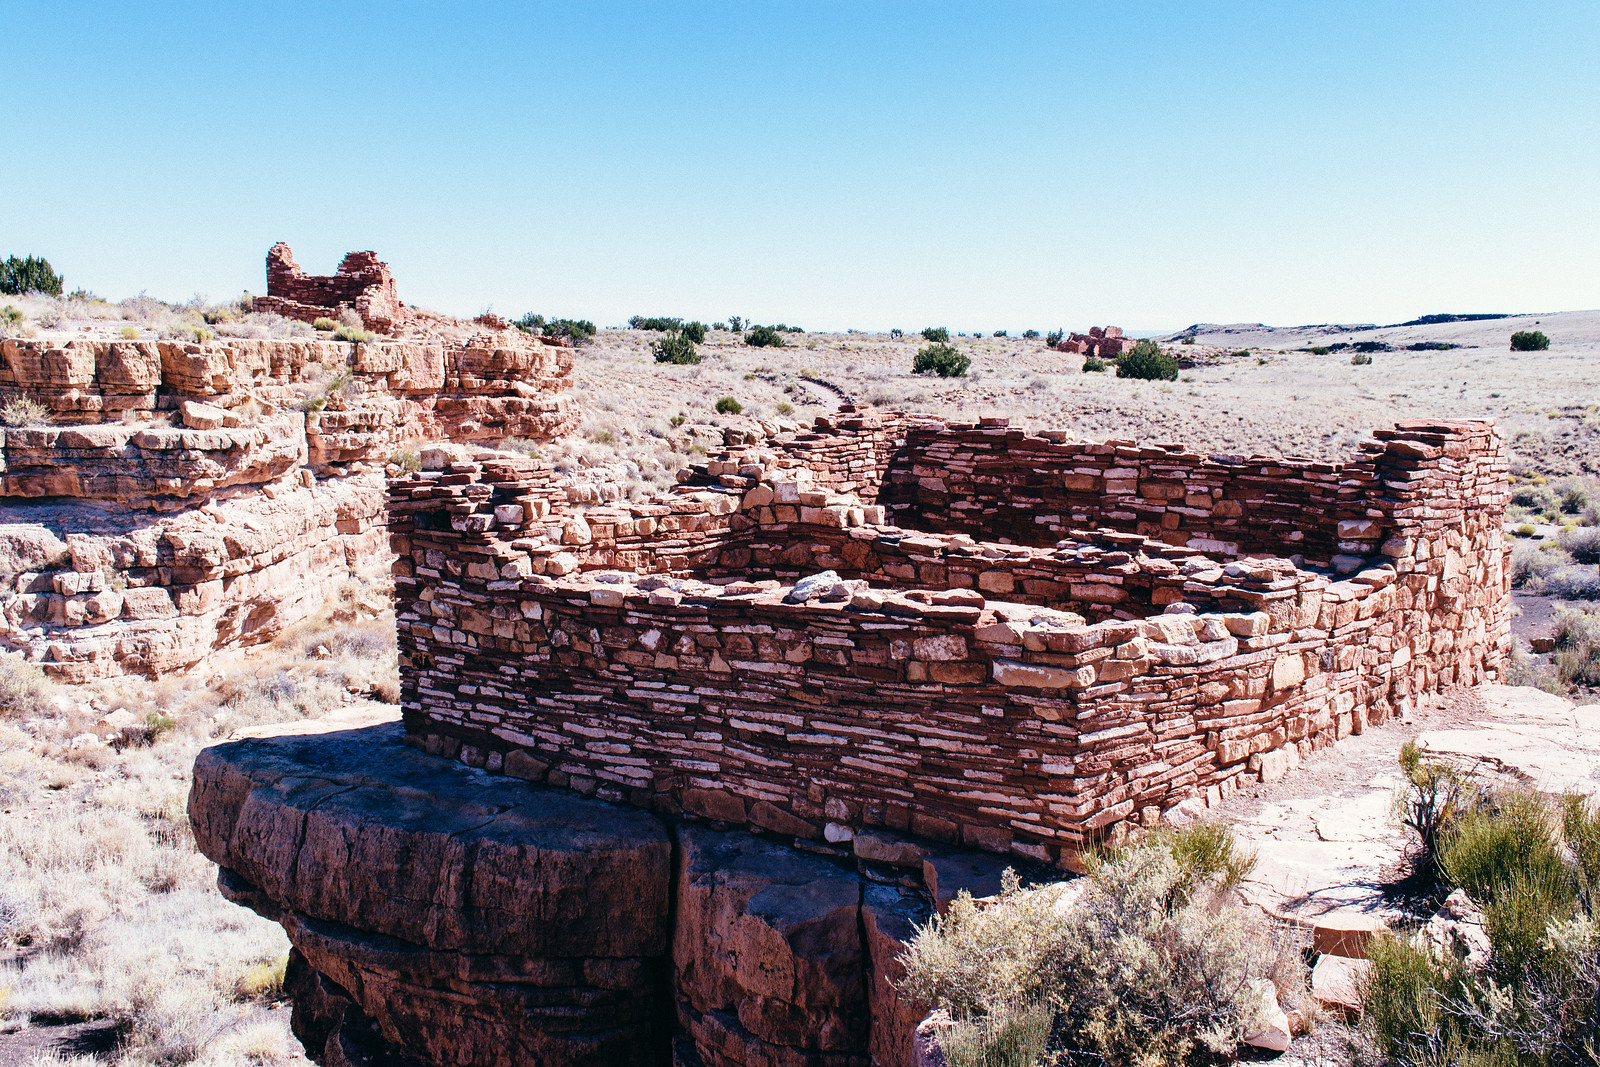 Square-shaped ruins perched on the edge of a shallow canyon rim